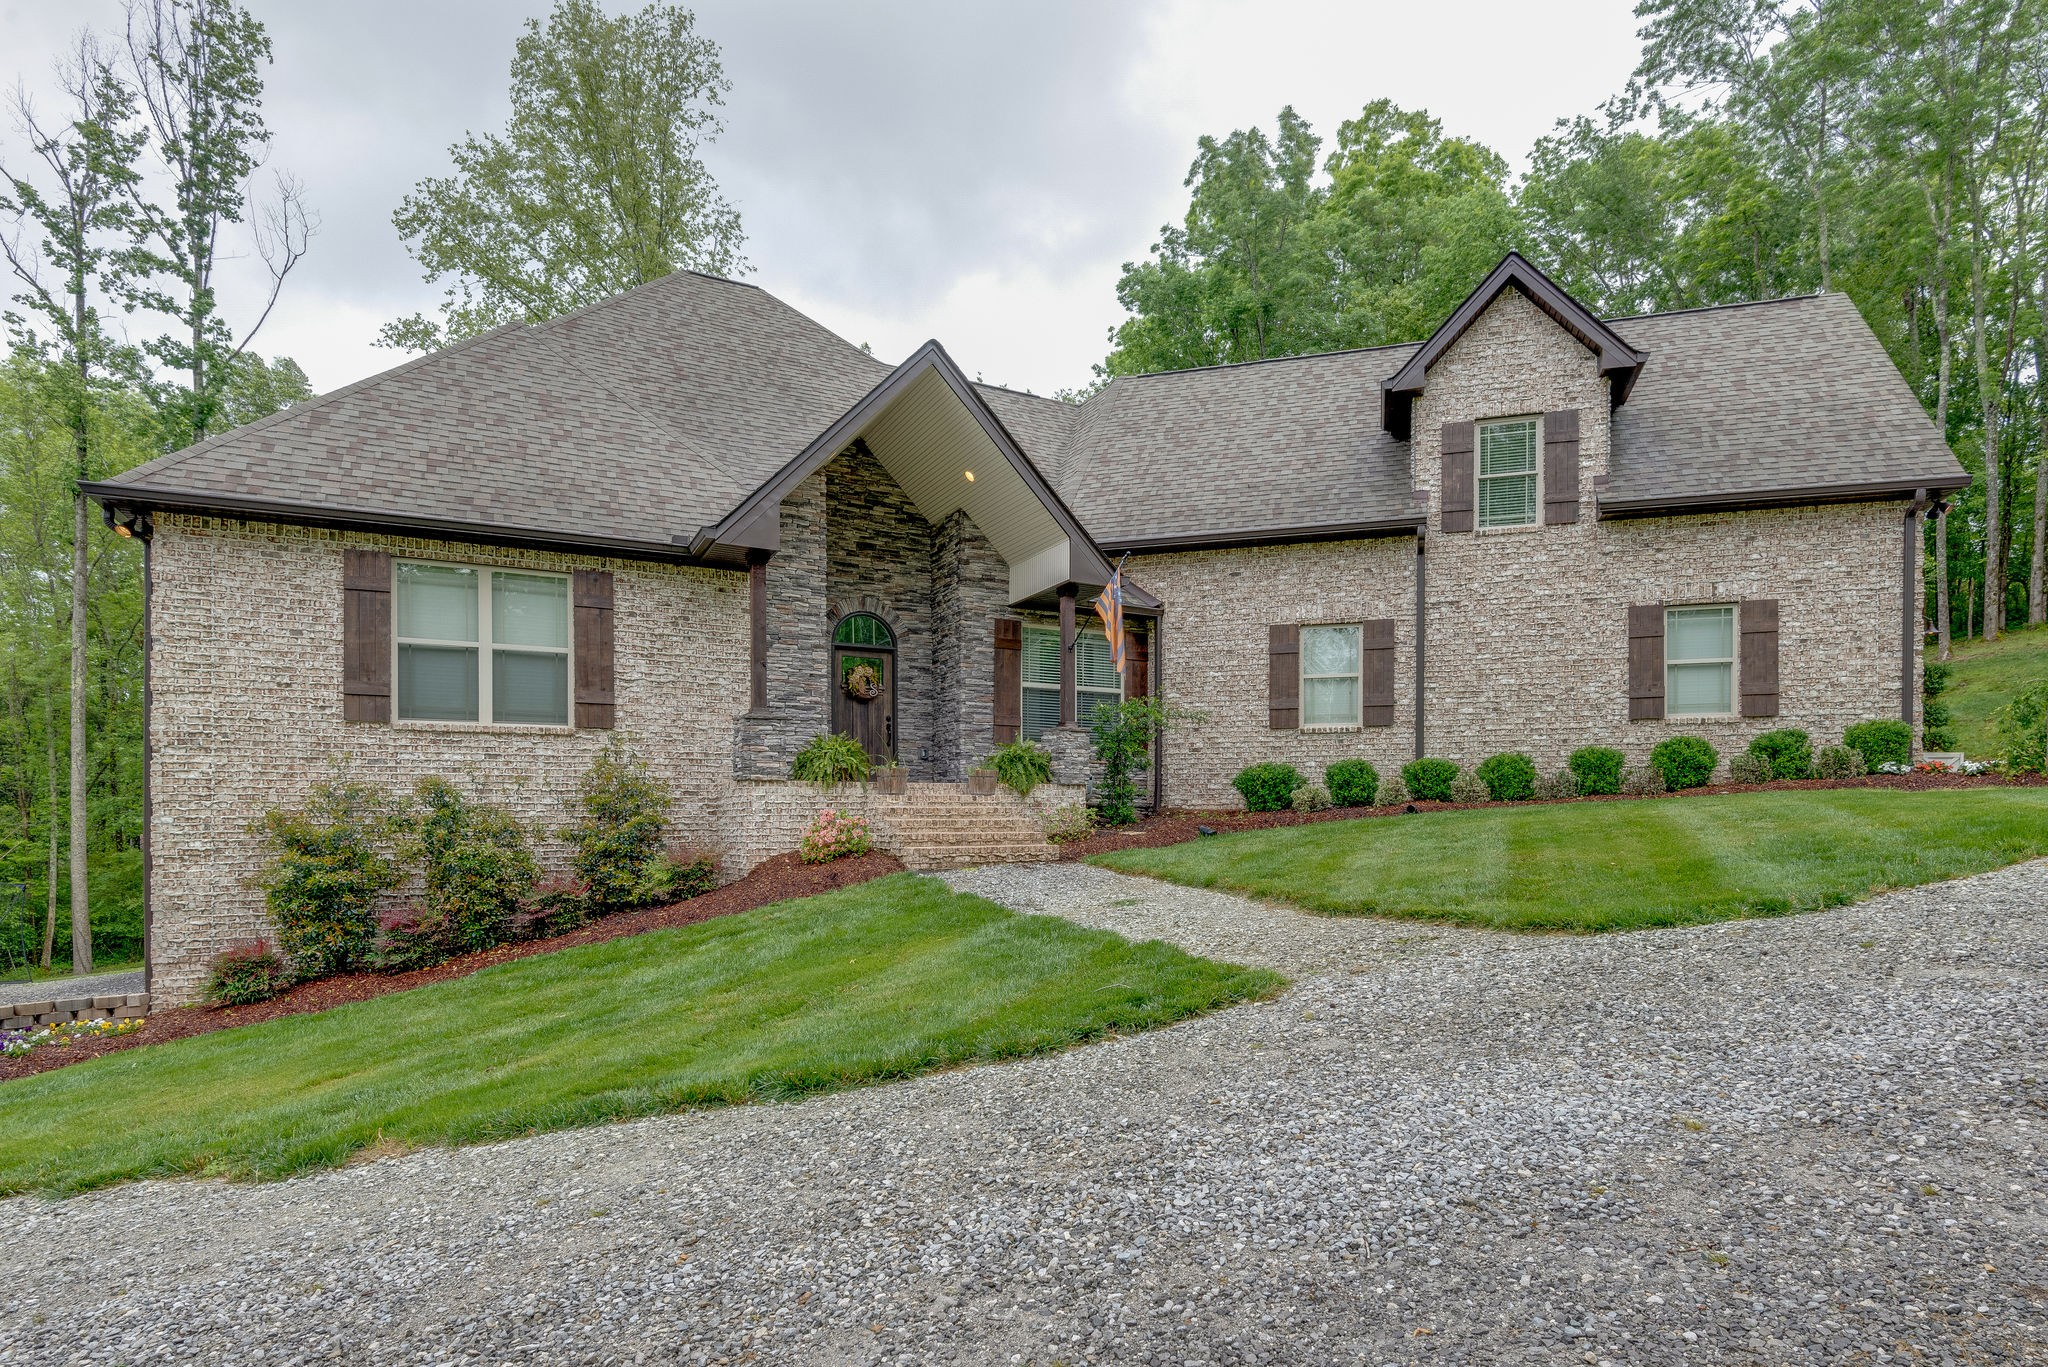 364 E Kingston Springs Rd, Kingston Springs, TN 37082 - Kingston Springs, TN real estate listing